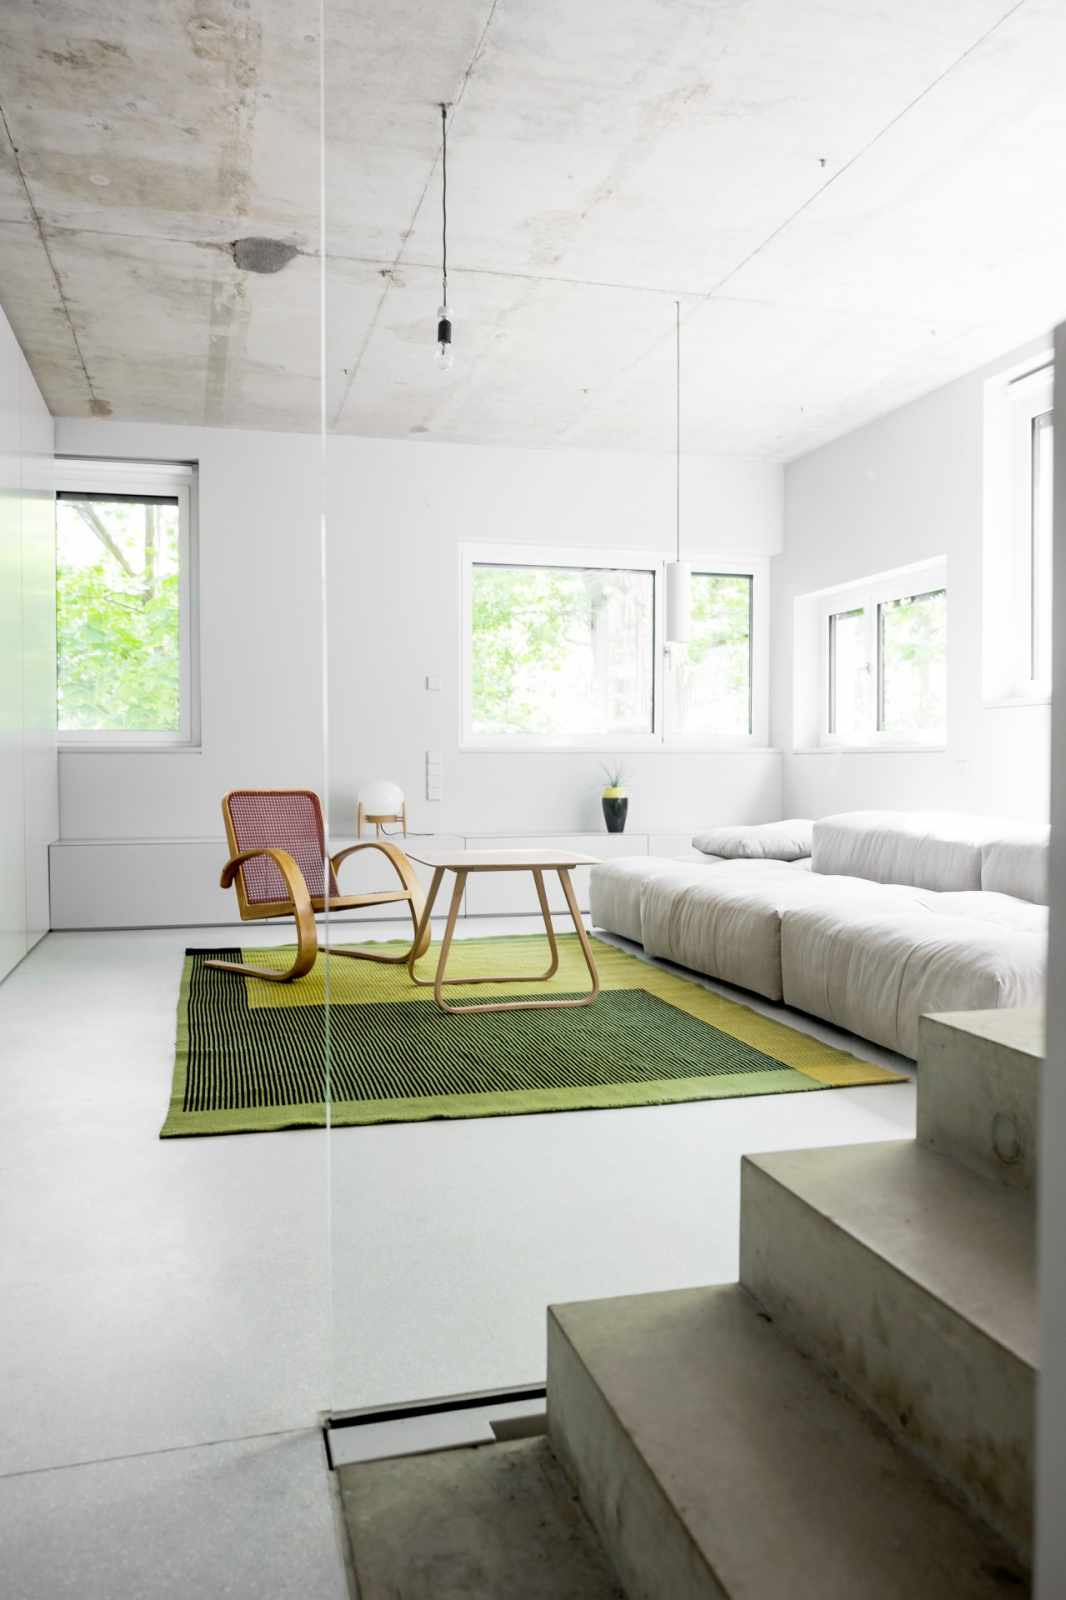 Minimalism Style in Home Interior Ideas